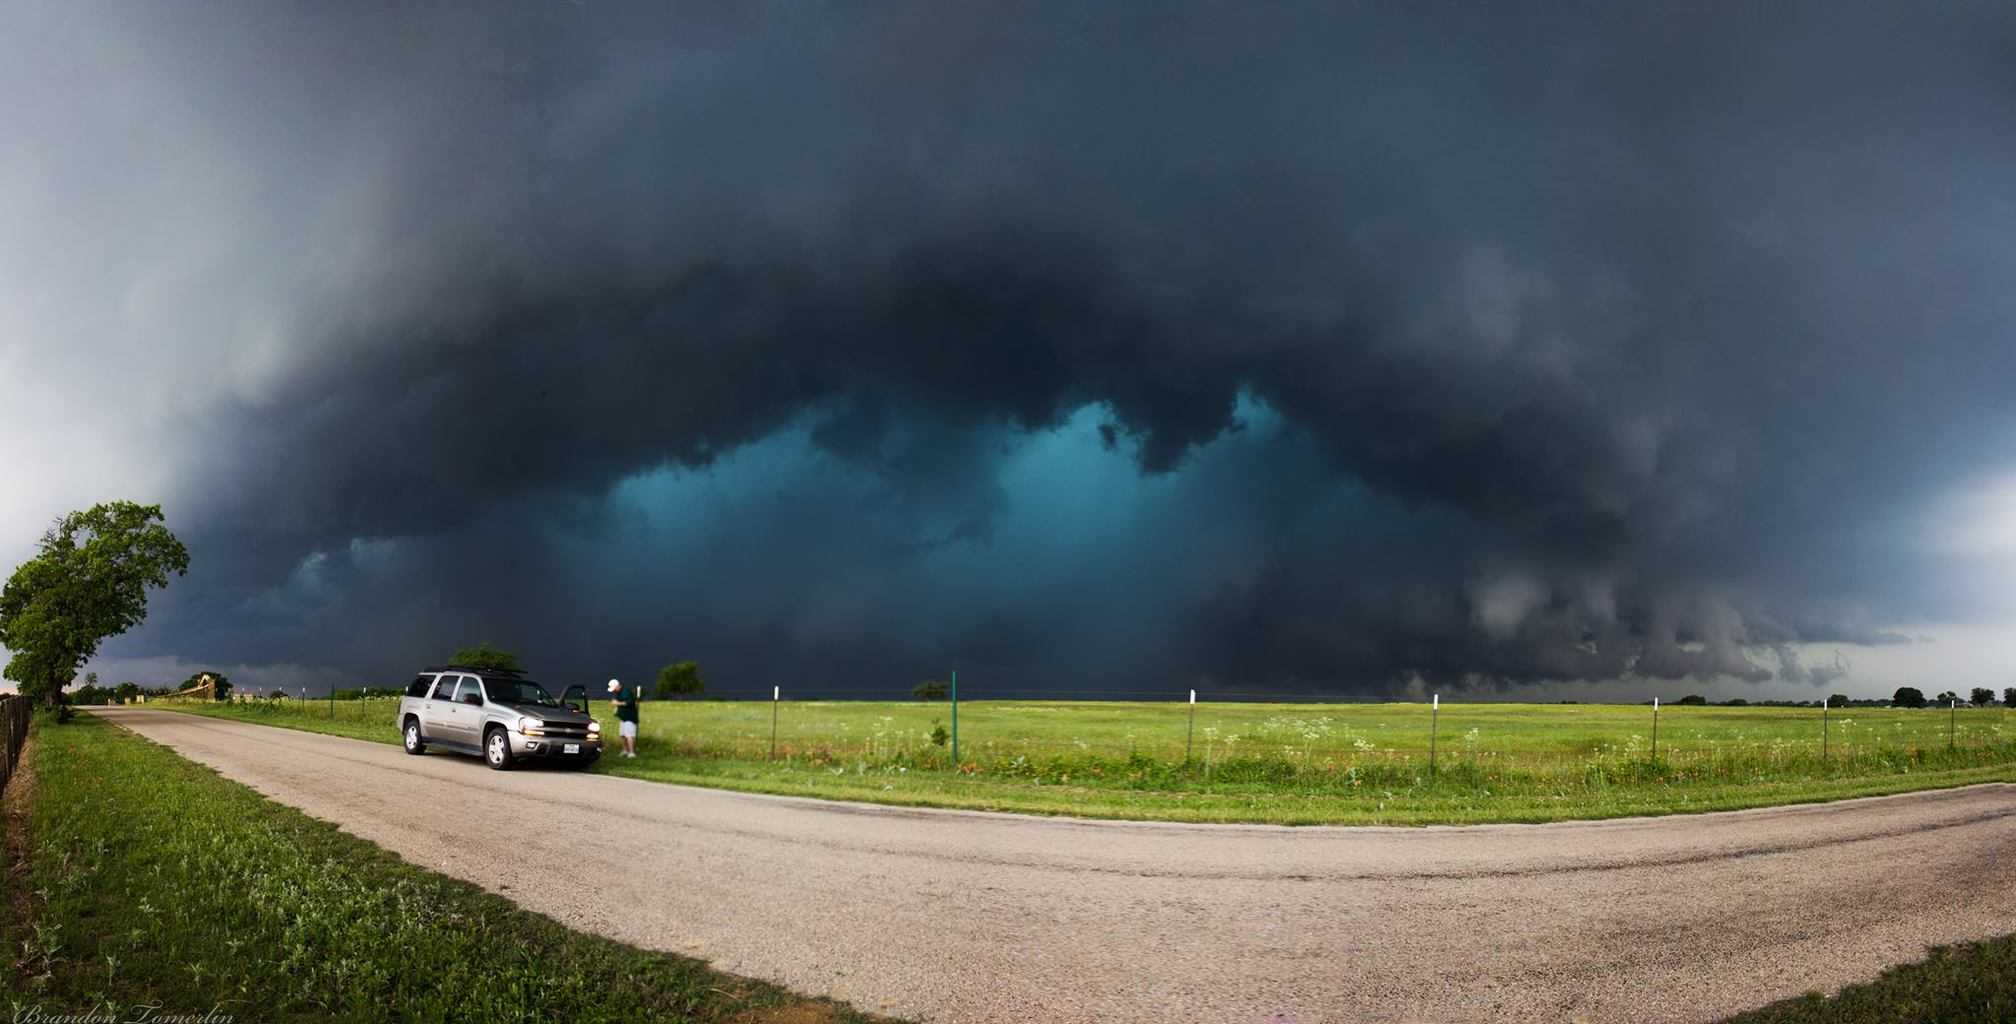 A panorama of the HP supercell on Saturday a couple minutes before it produced a tornado near Huckabay, TX.